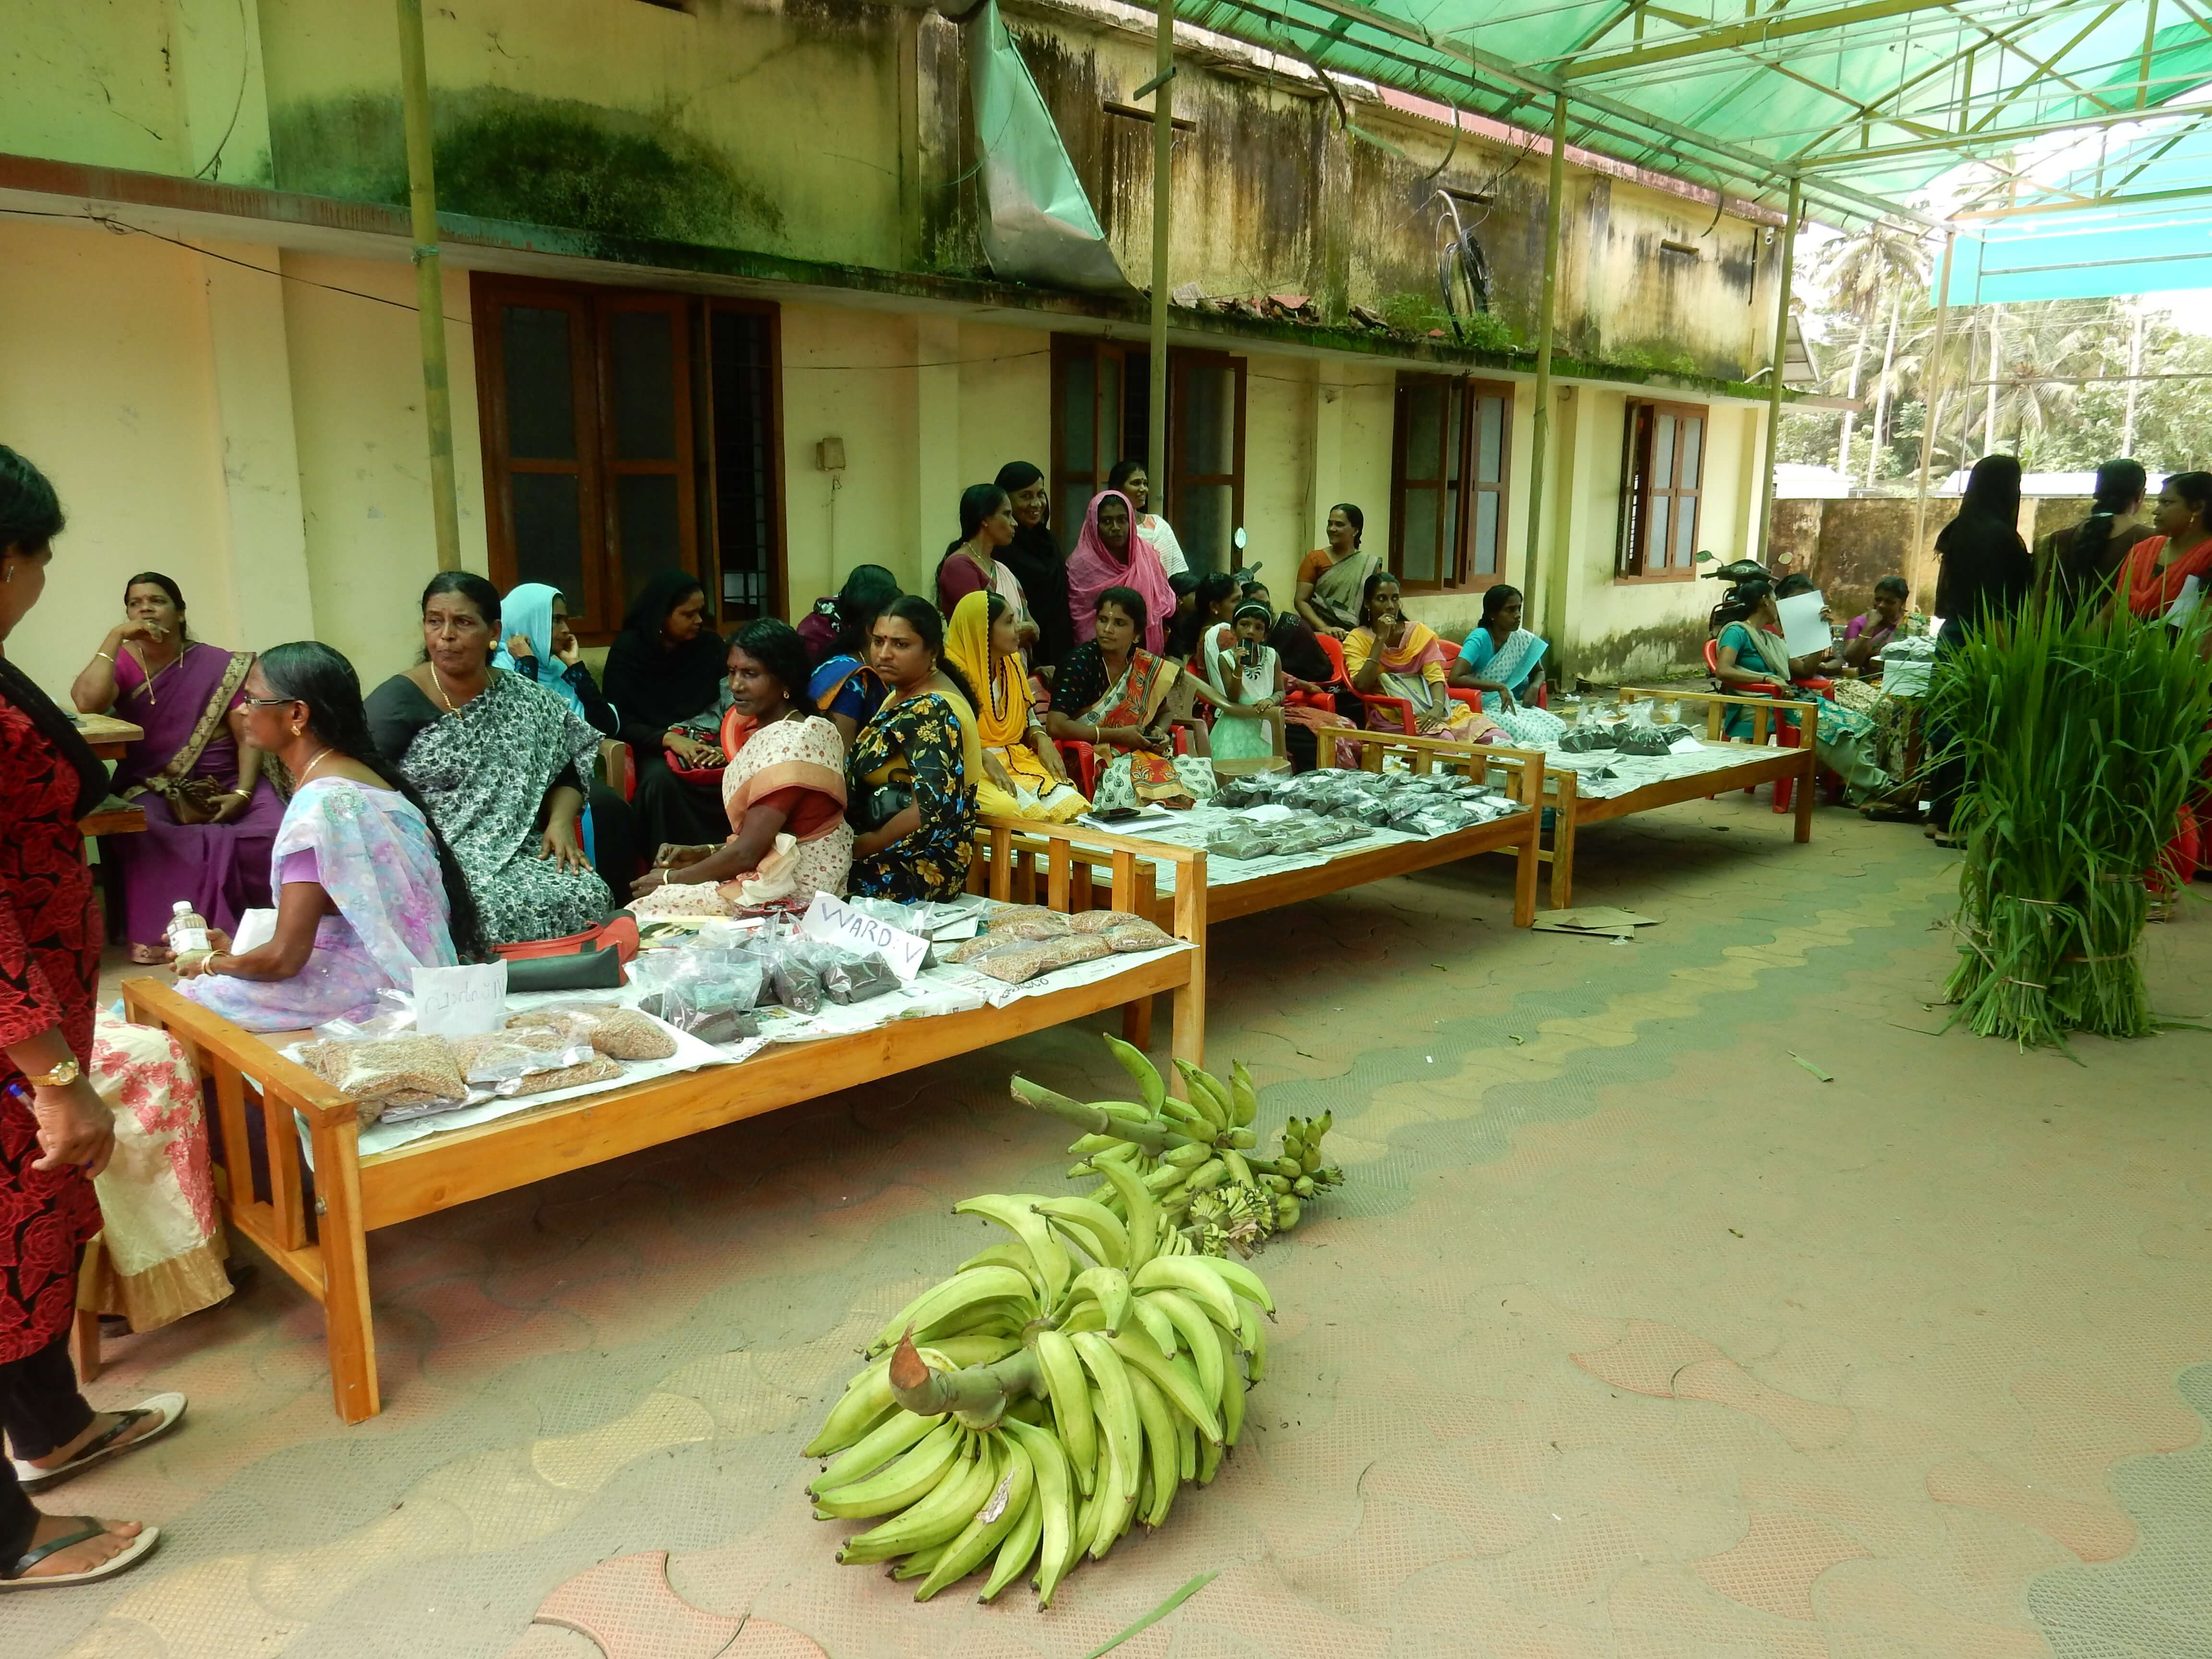 Local marketing of farm produces- sesamum, turmeric, fodder, millets, banana by the groups